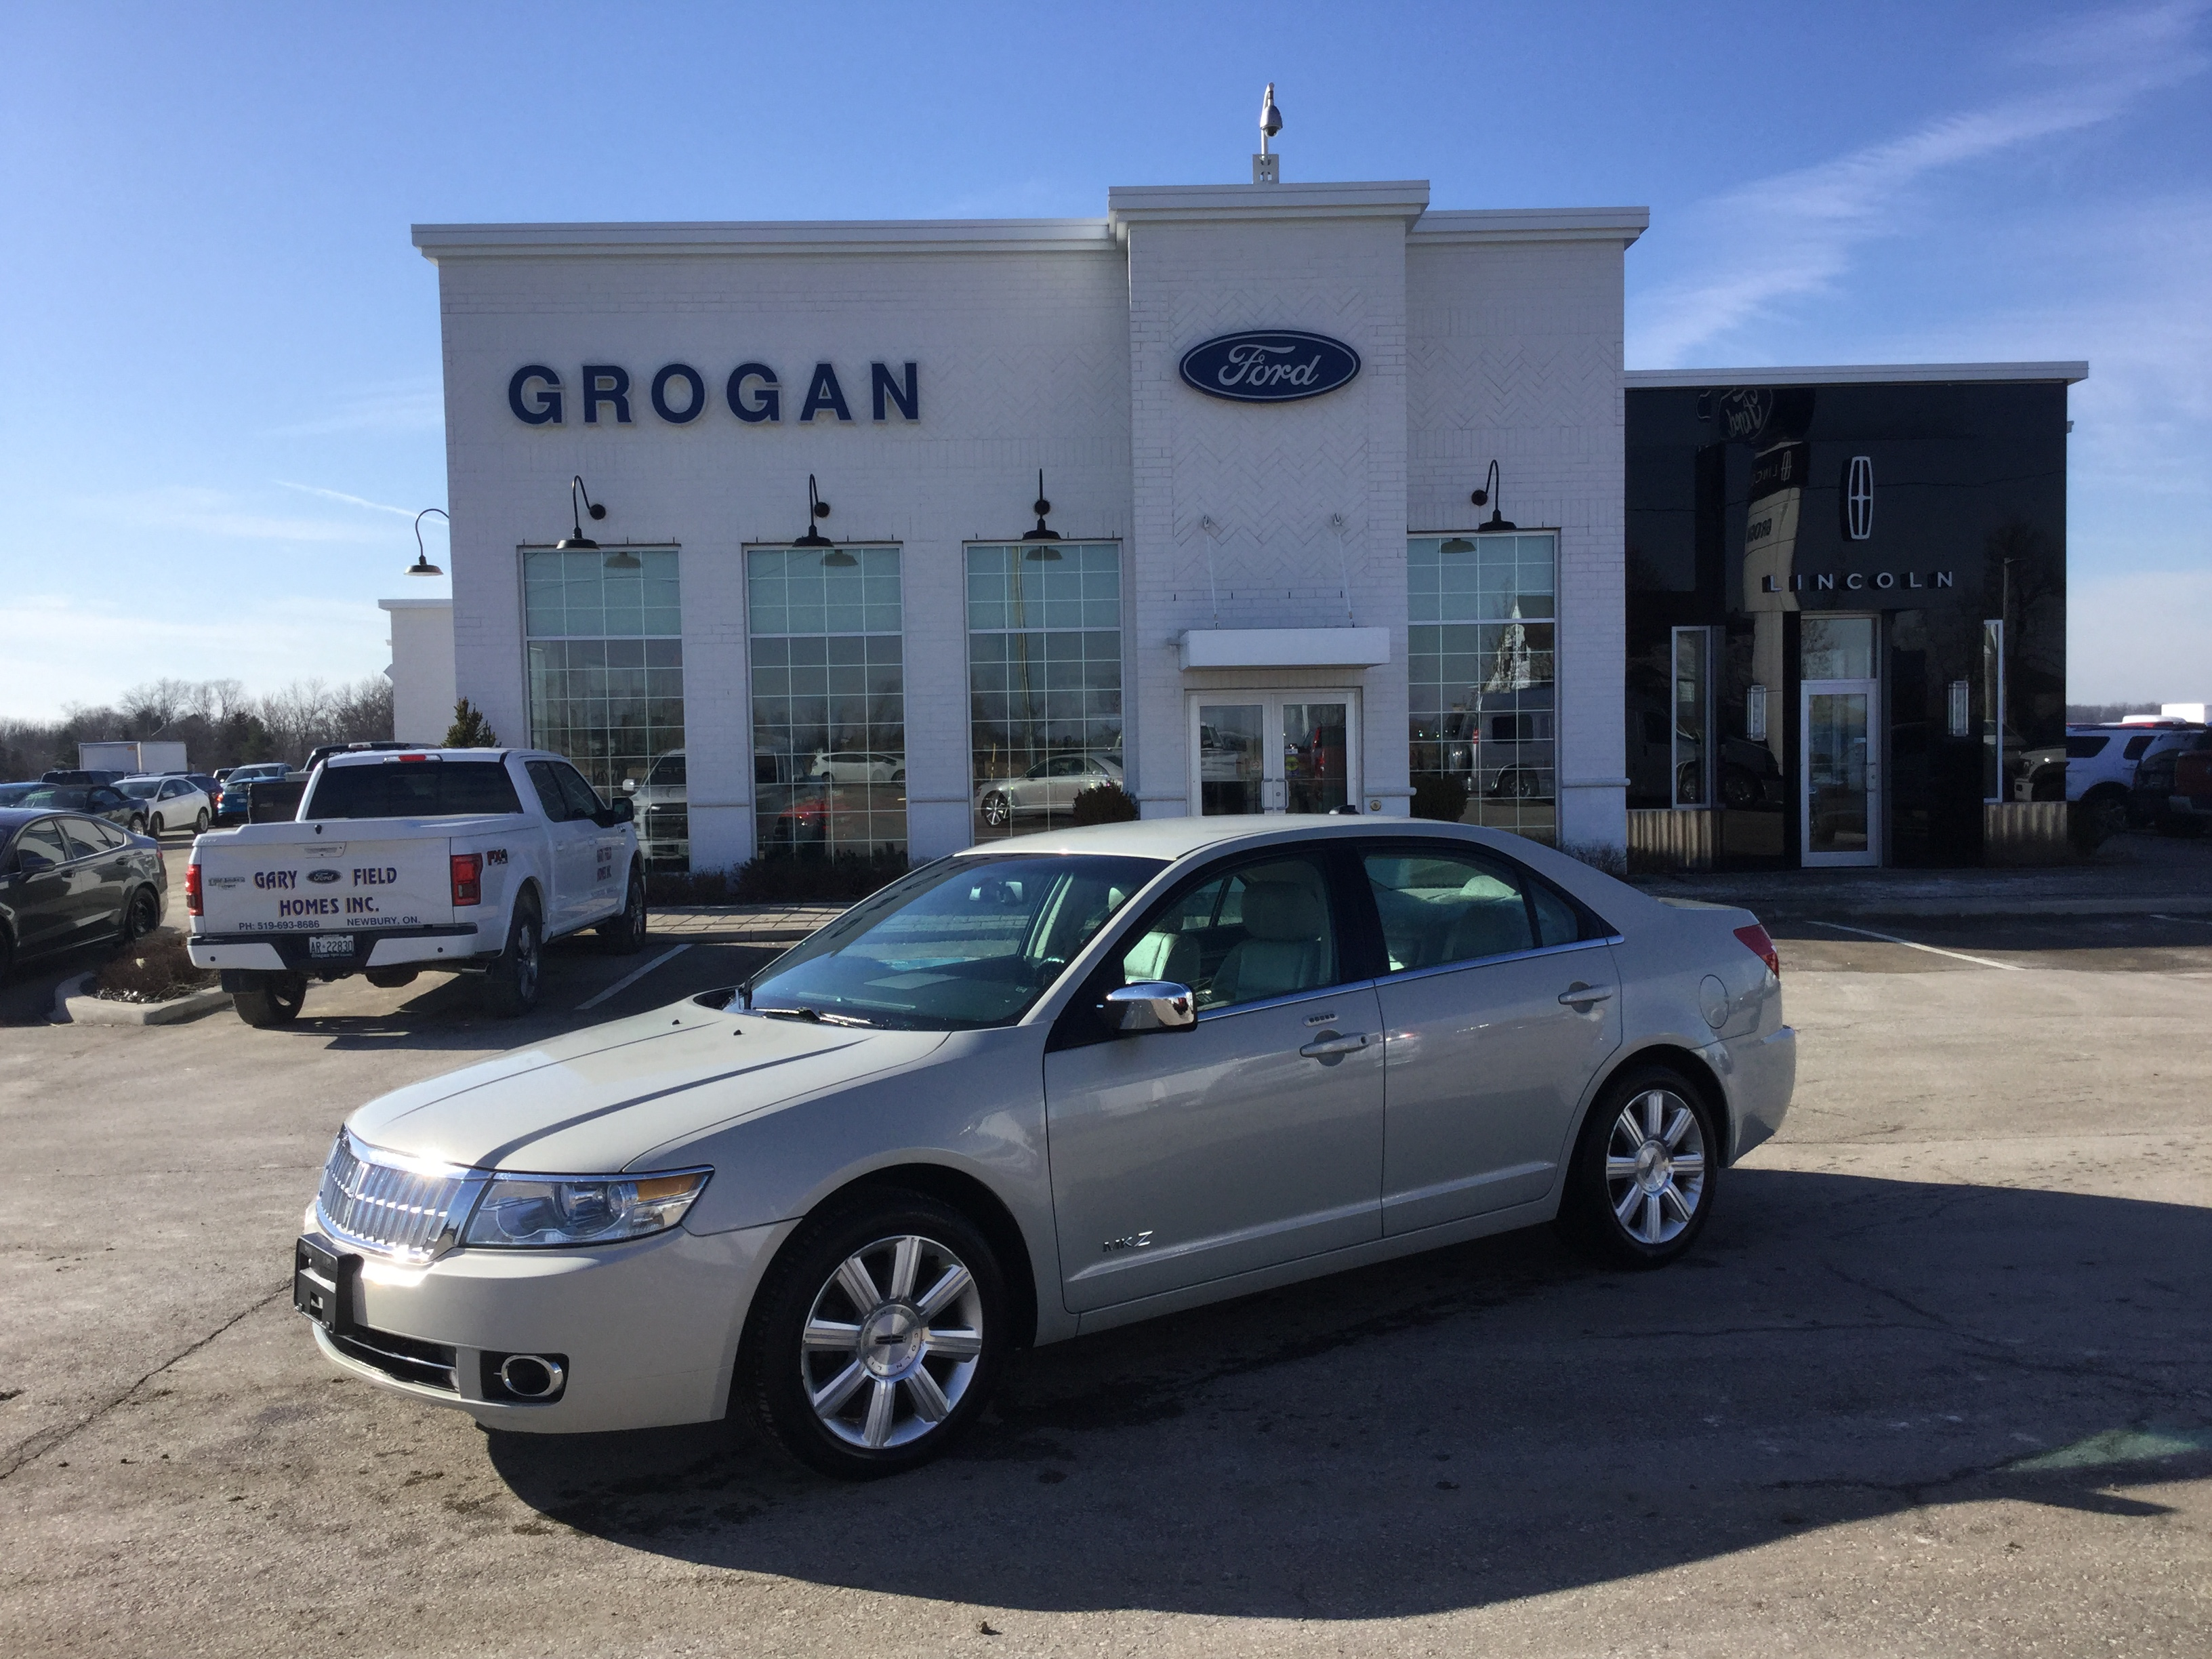 mkz a me fusion hybrid lincoln makes review rear used reserve want